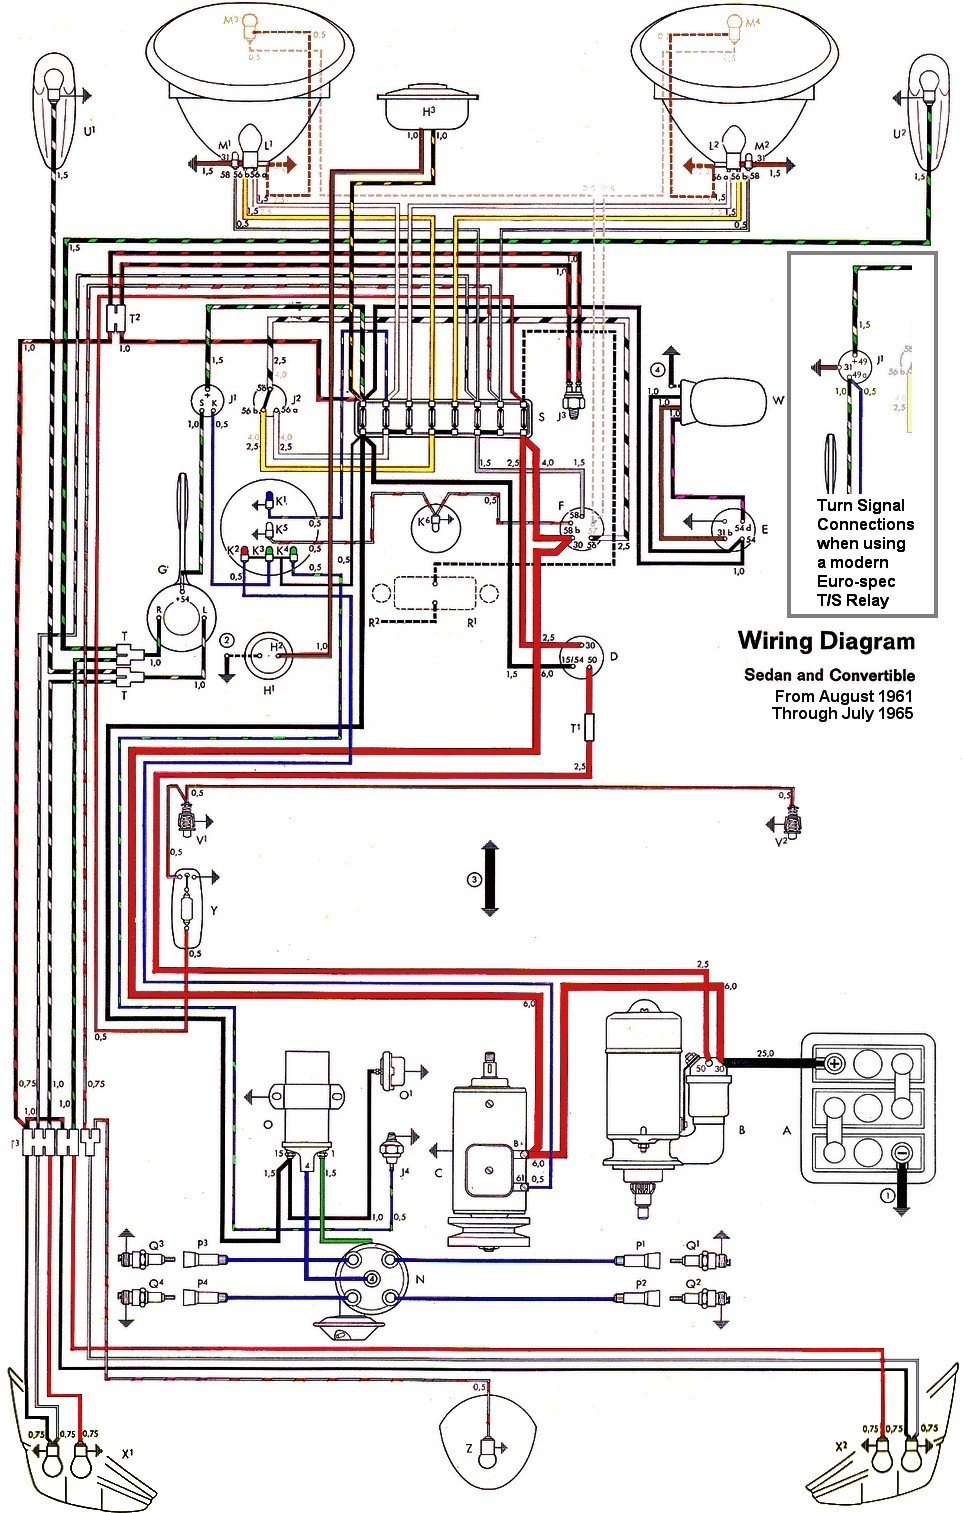 65 Vw Bug Fuse Diagram Wiring For Light Switch 1998 Passat Wagon Thesamba Com Type 1 Diagrams Rh Cabrio 68 Beetle